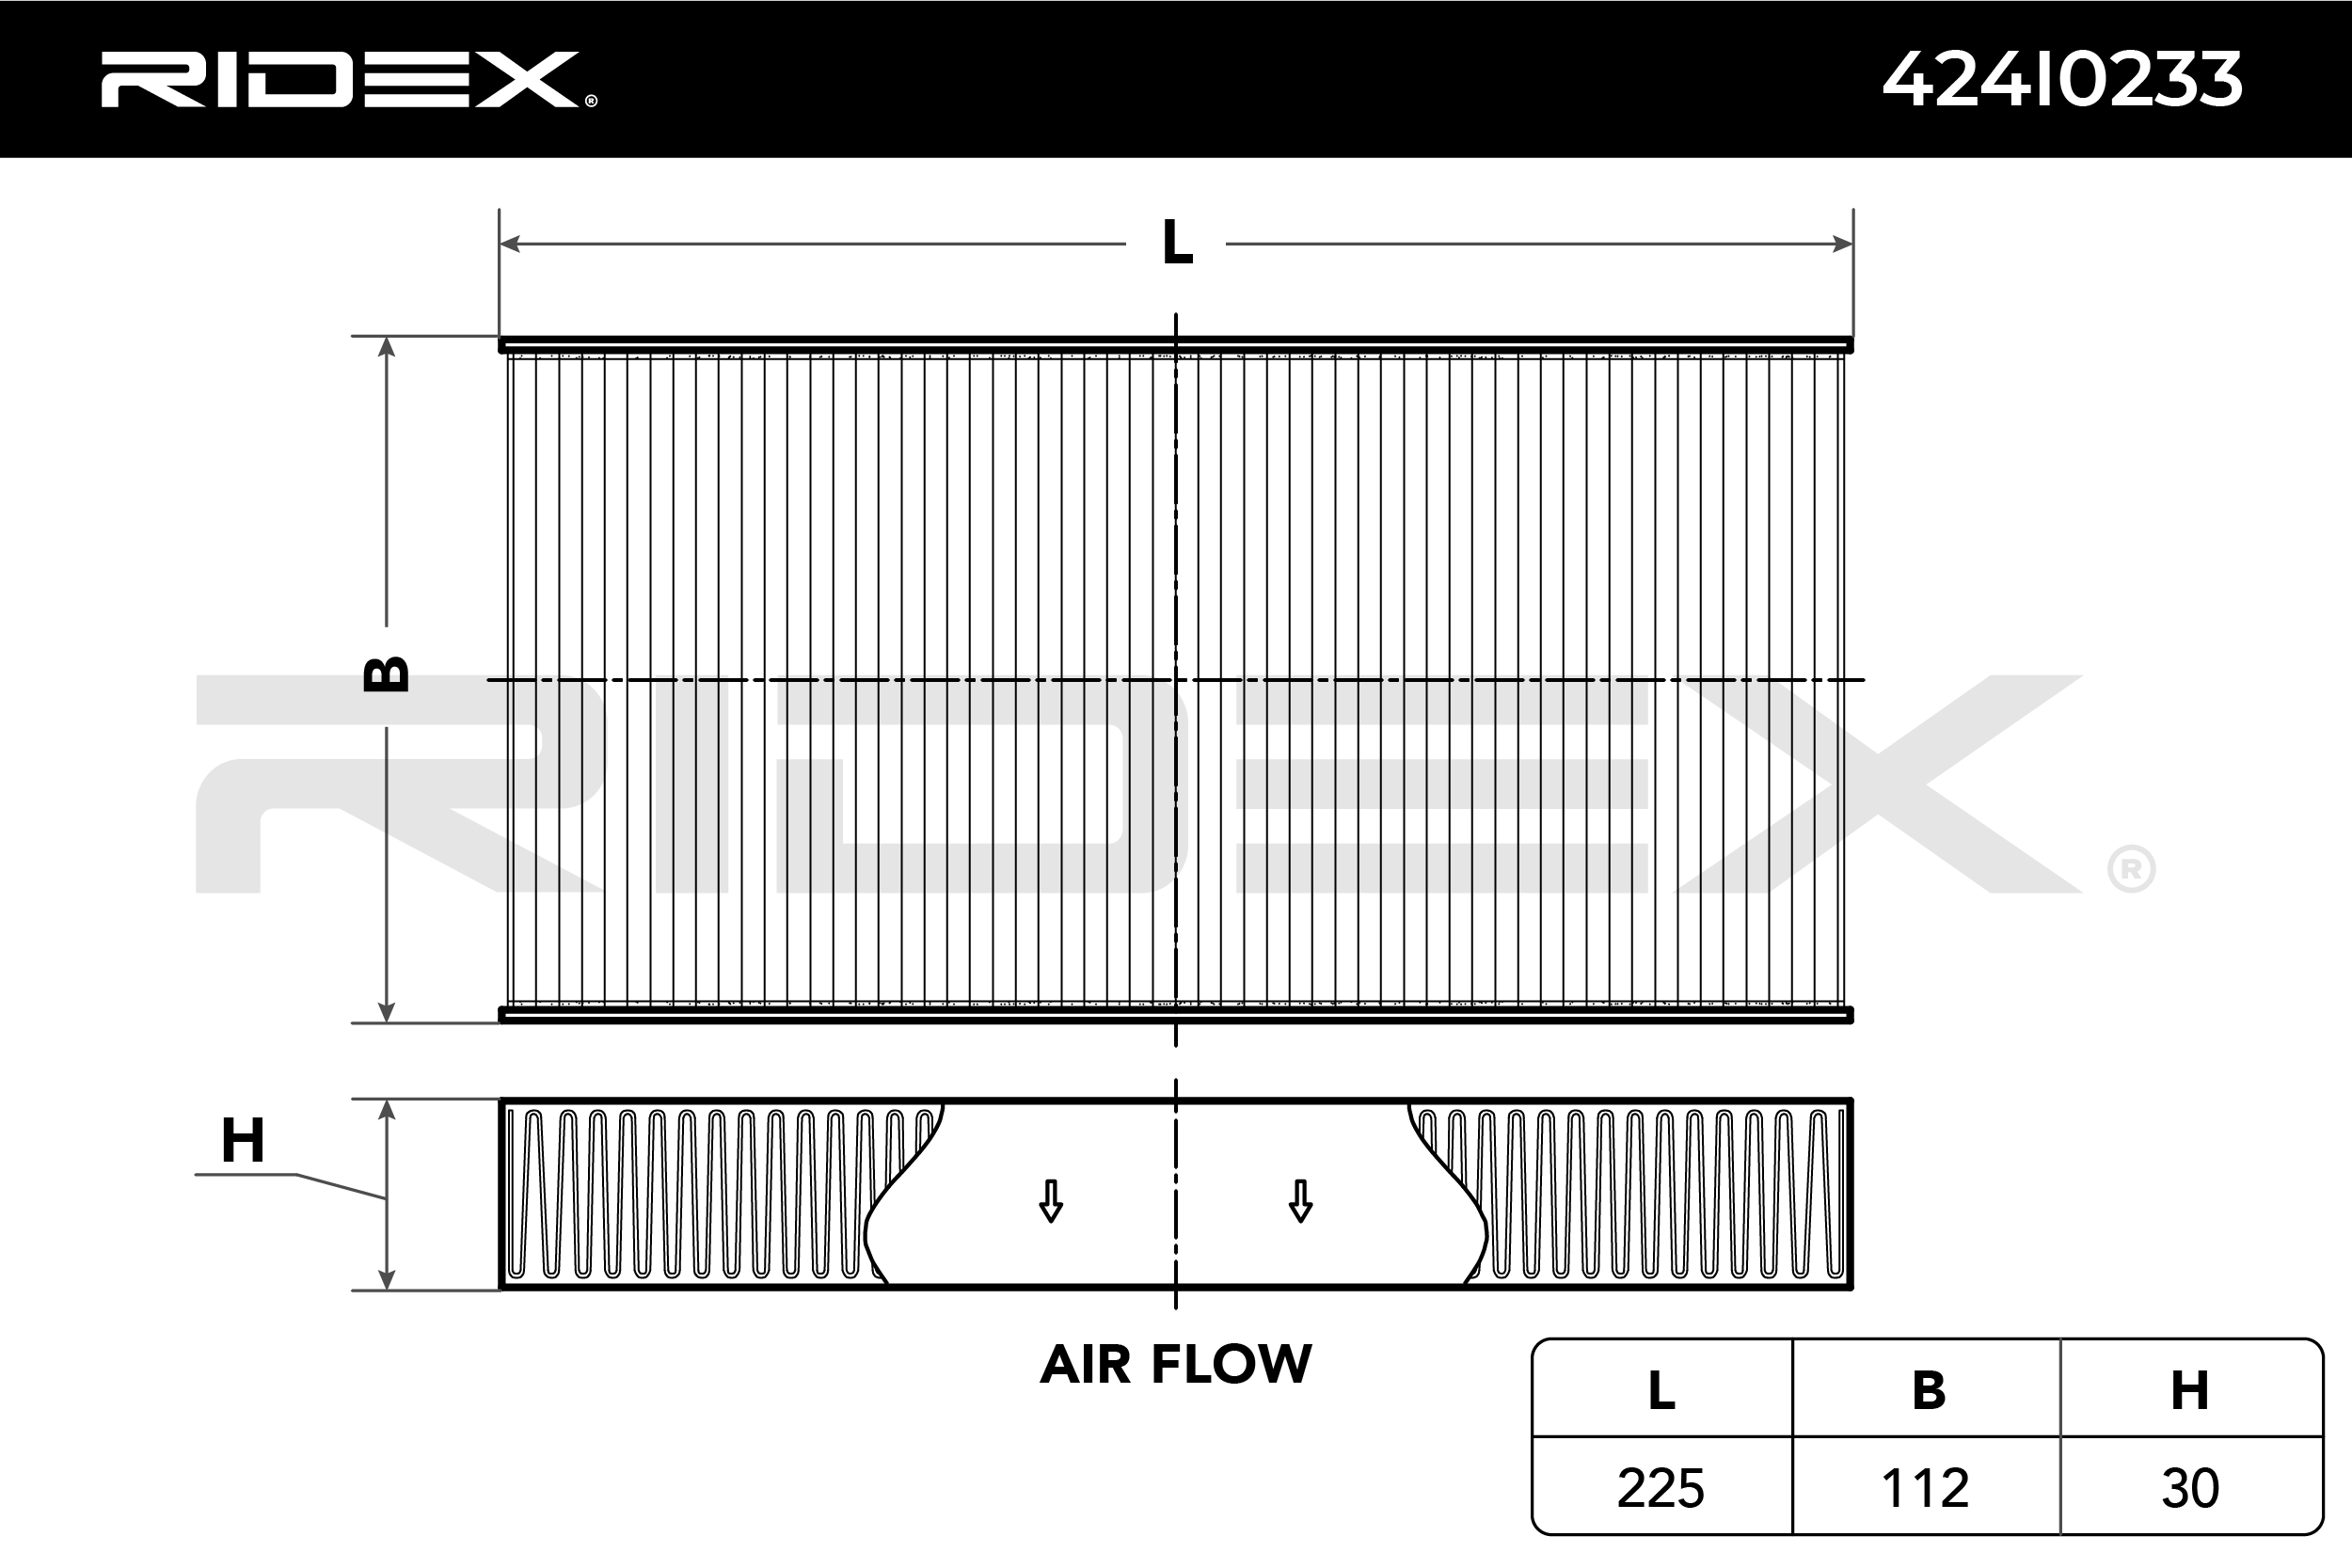 Cabin Air Filter RIDEX 424I0233 expert knowledge